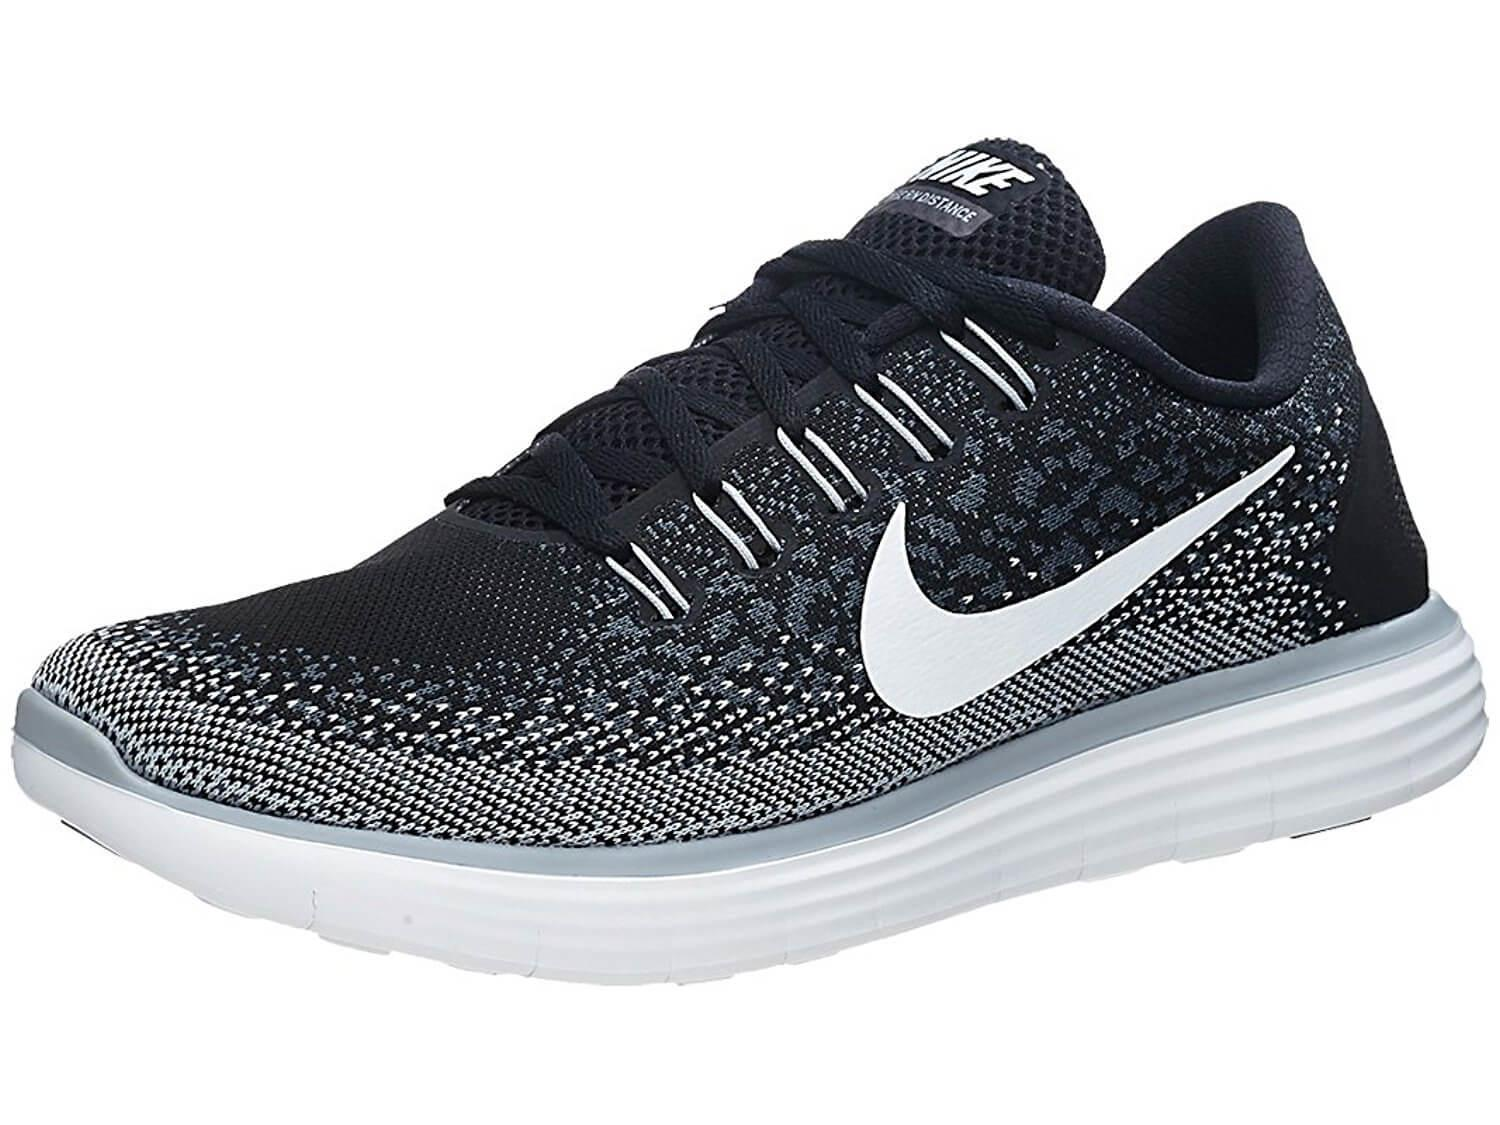 7b6e0d89a2c The Nike Free RN Distance is an excellent all-around running shoe.